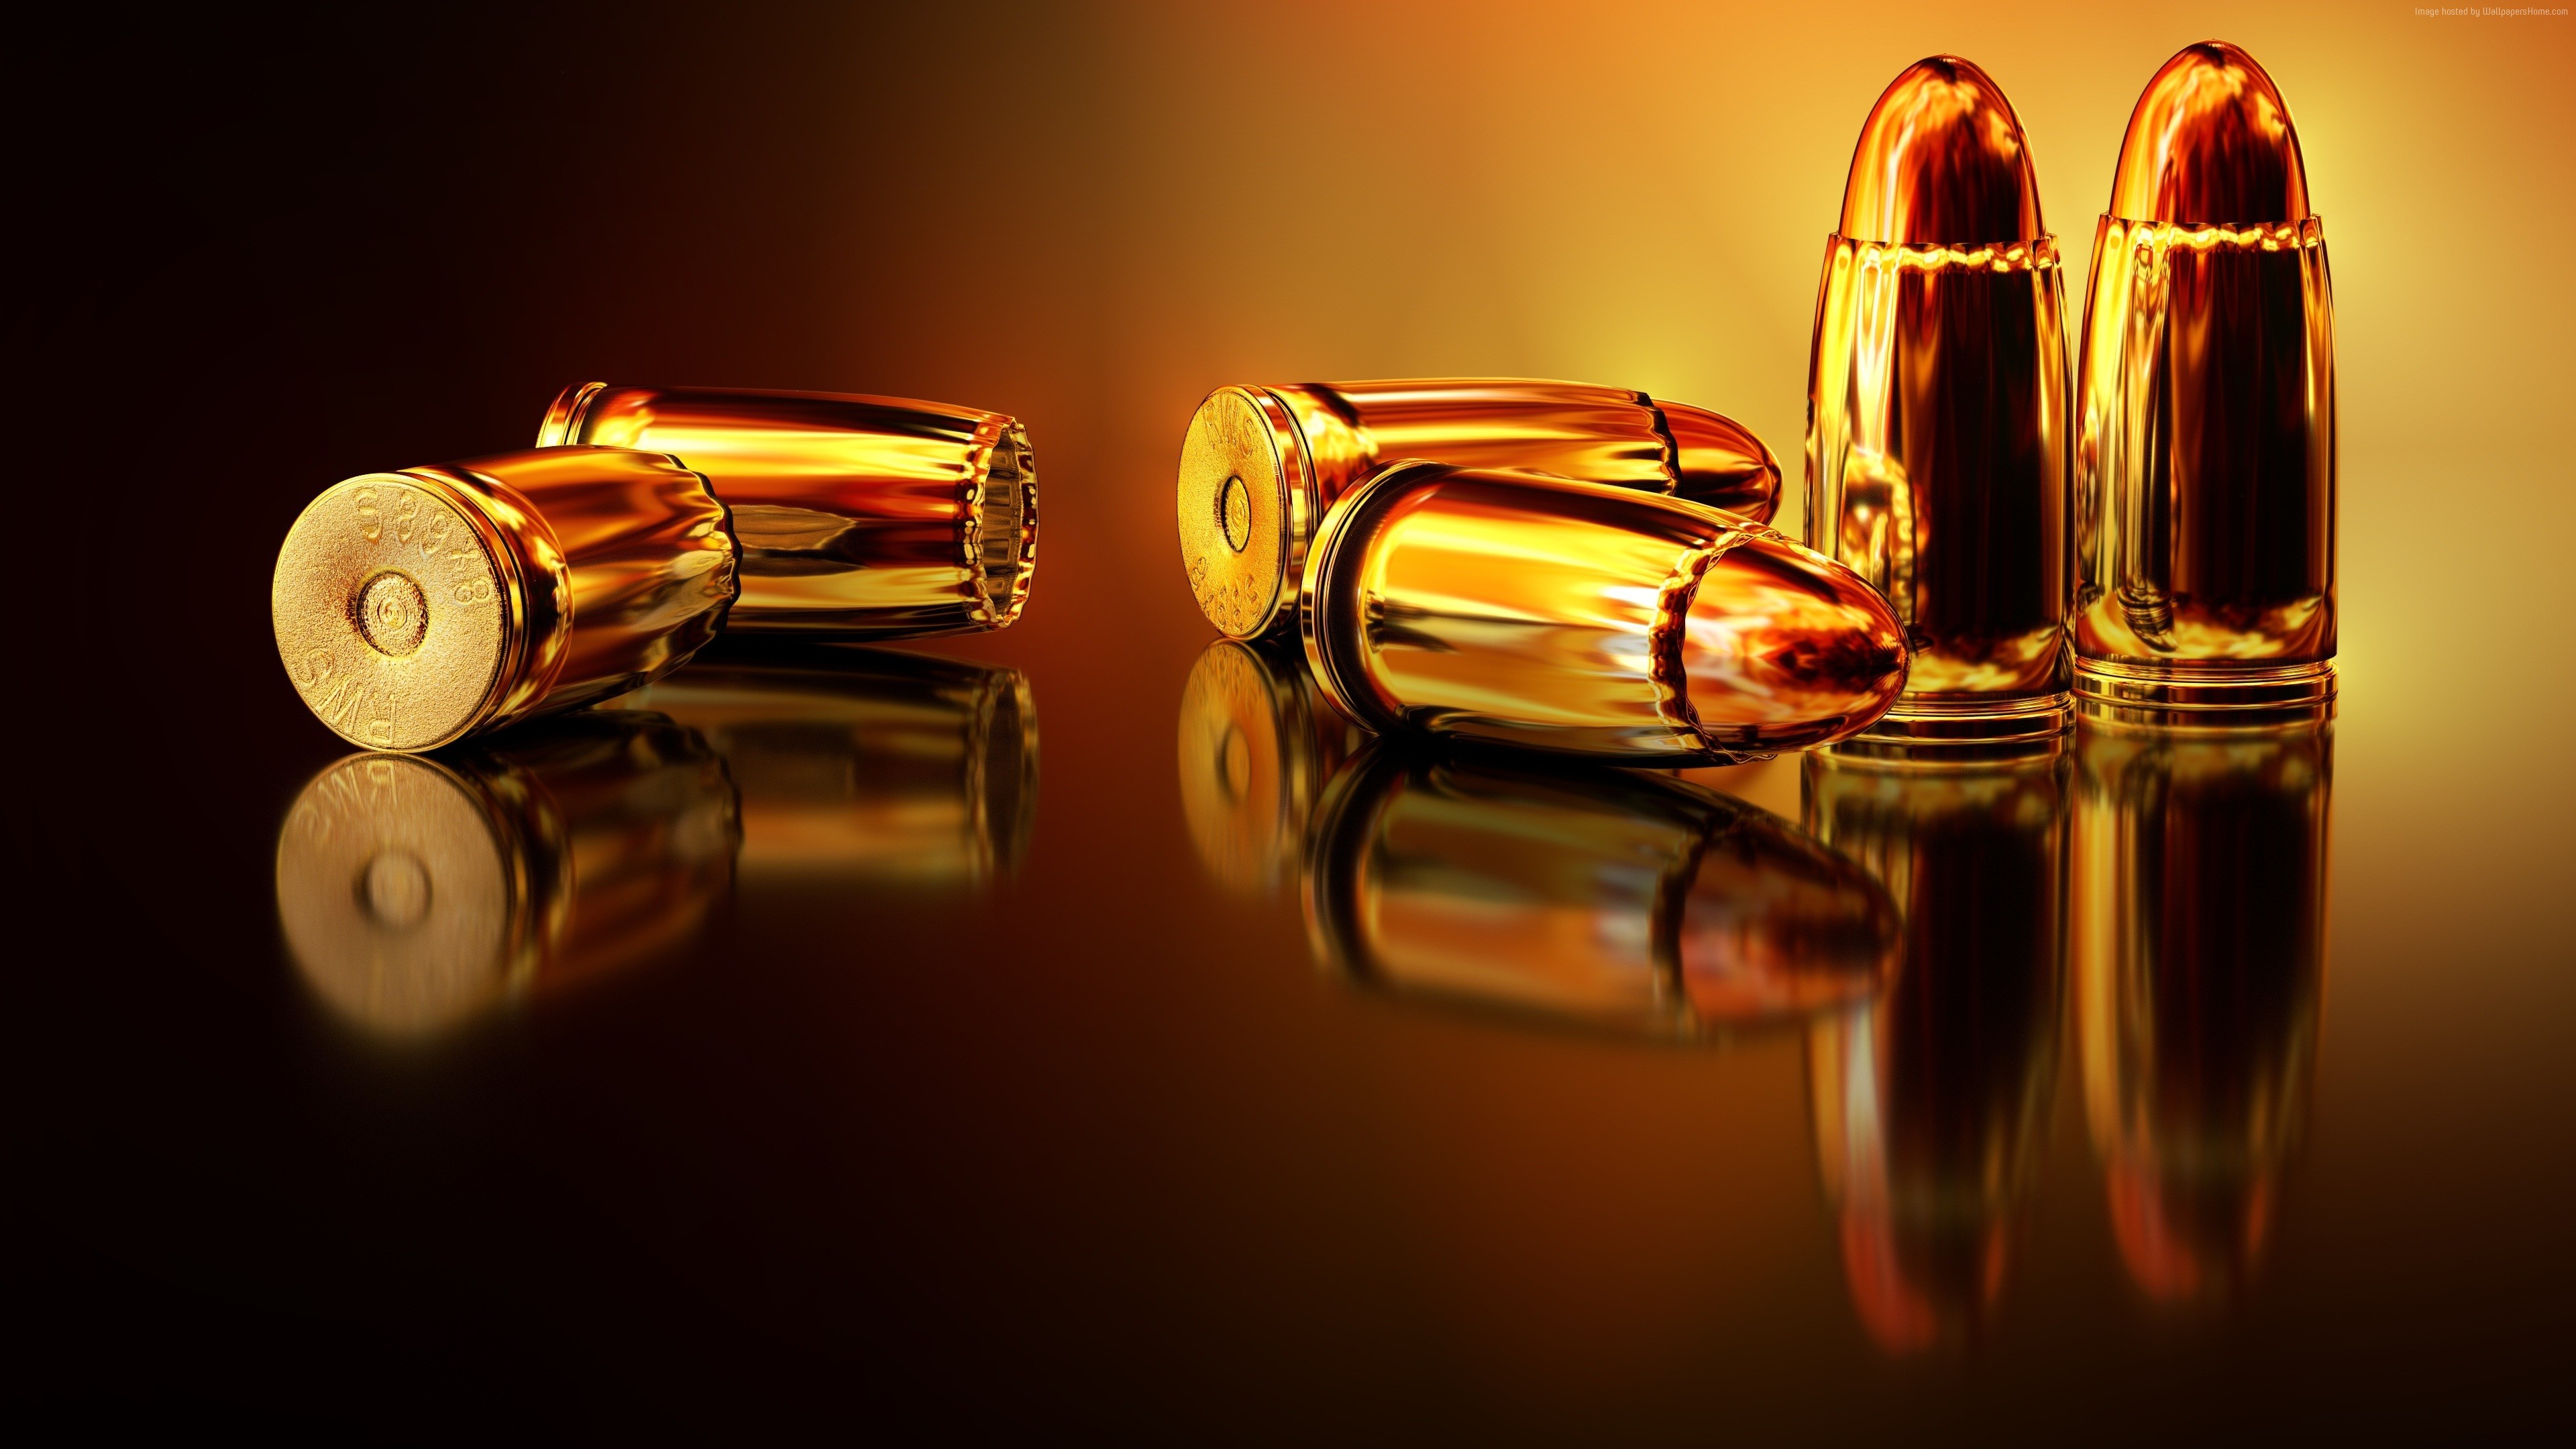 Stock Images bullets, 4k, Stock Images